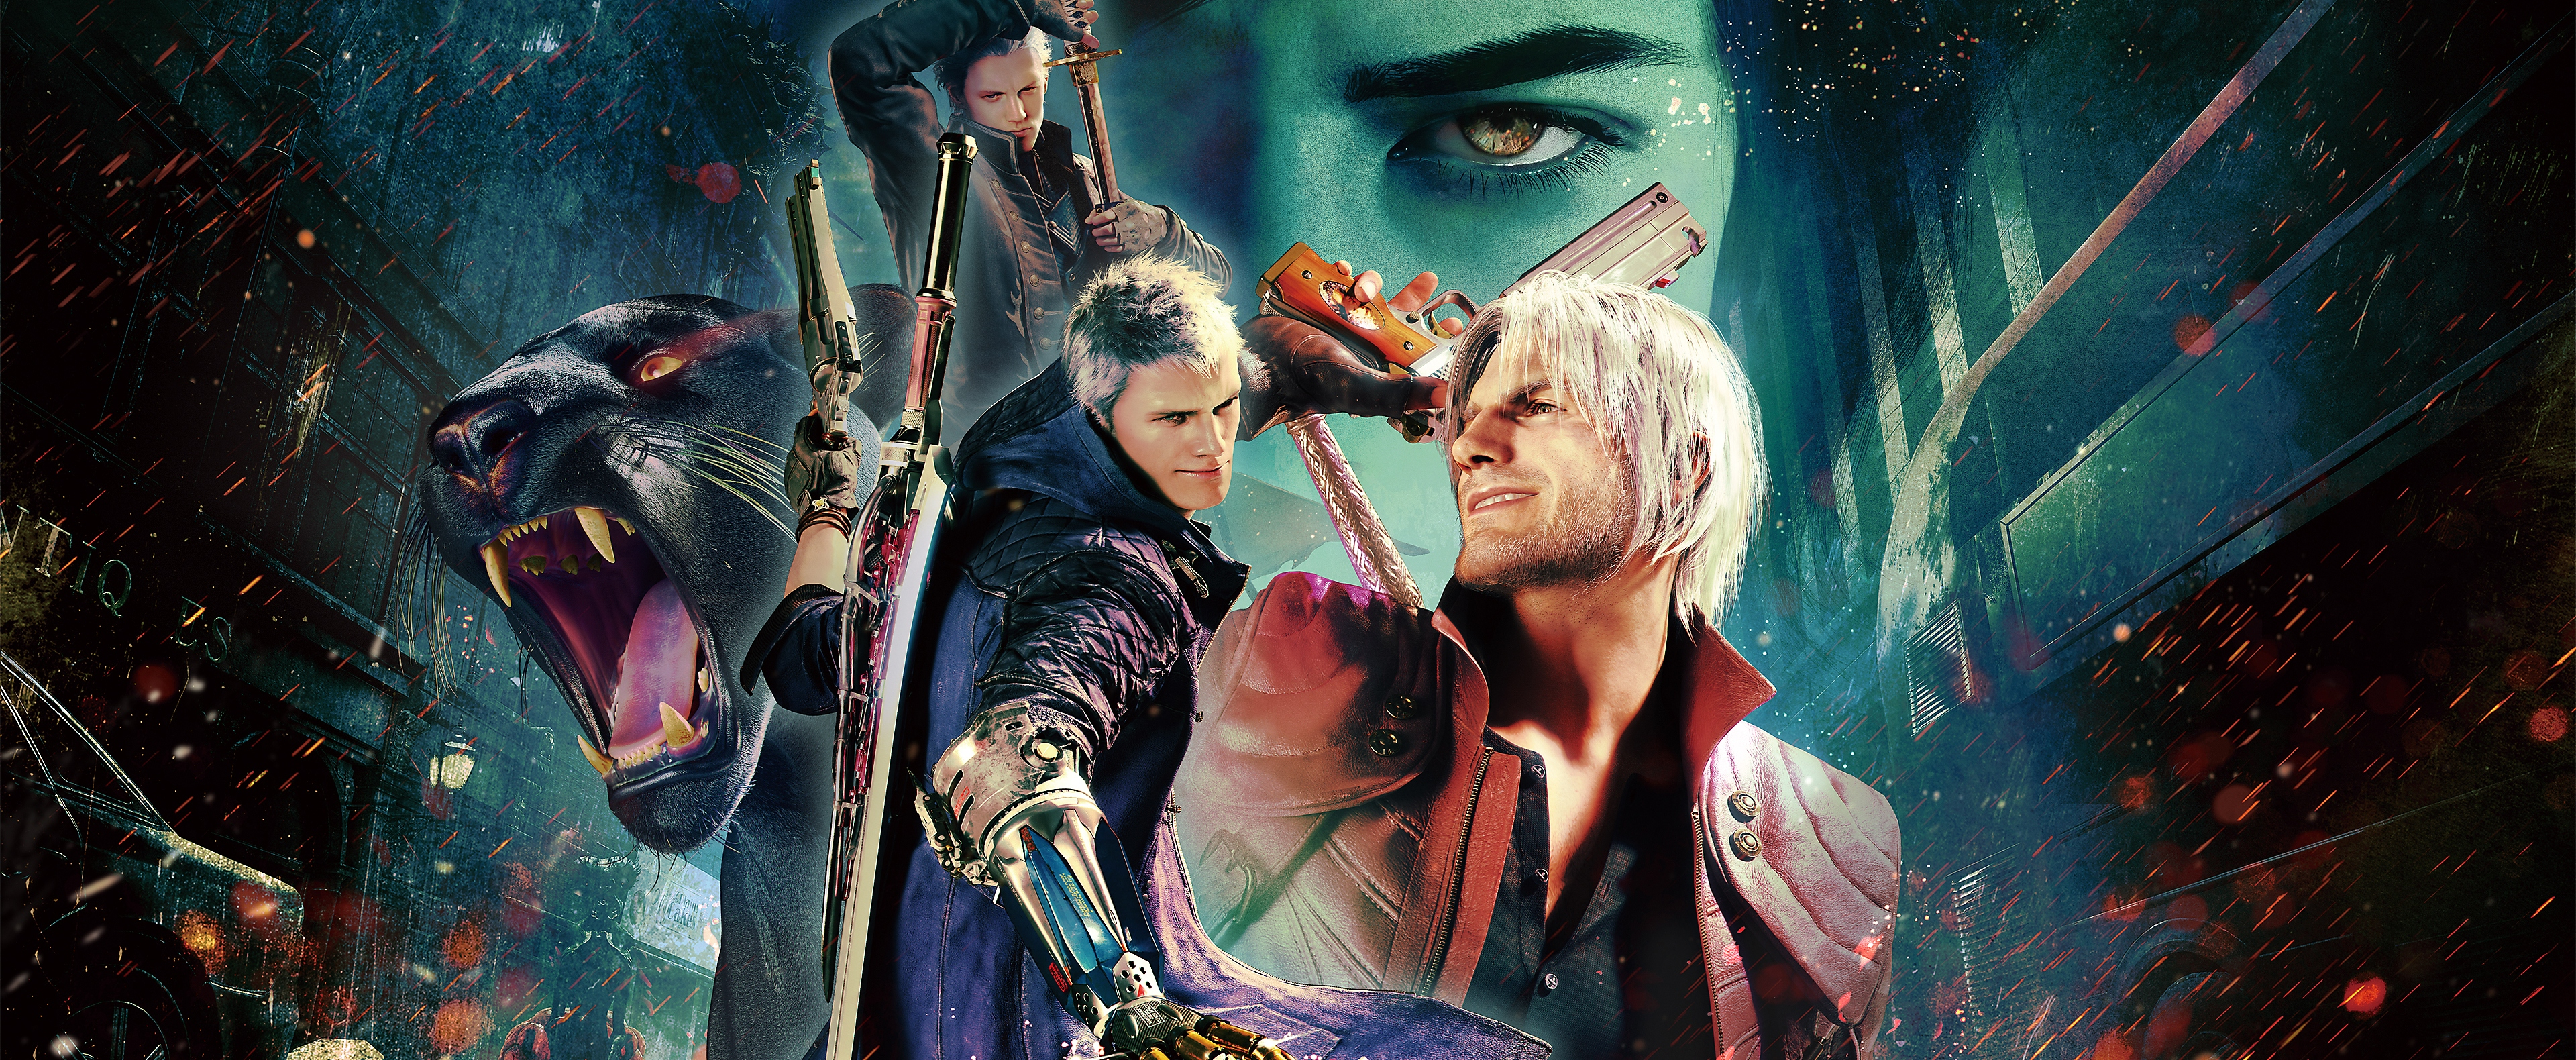 Devil May Cry 5: Special Edition - Image